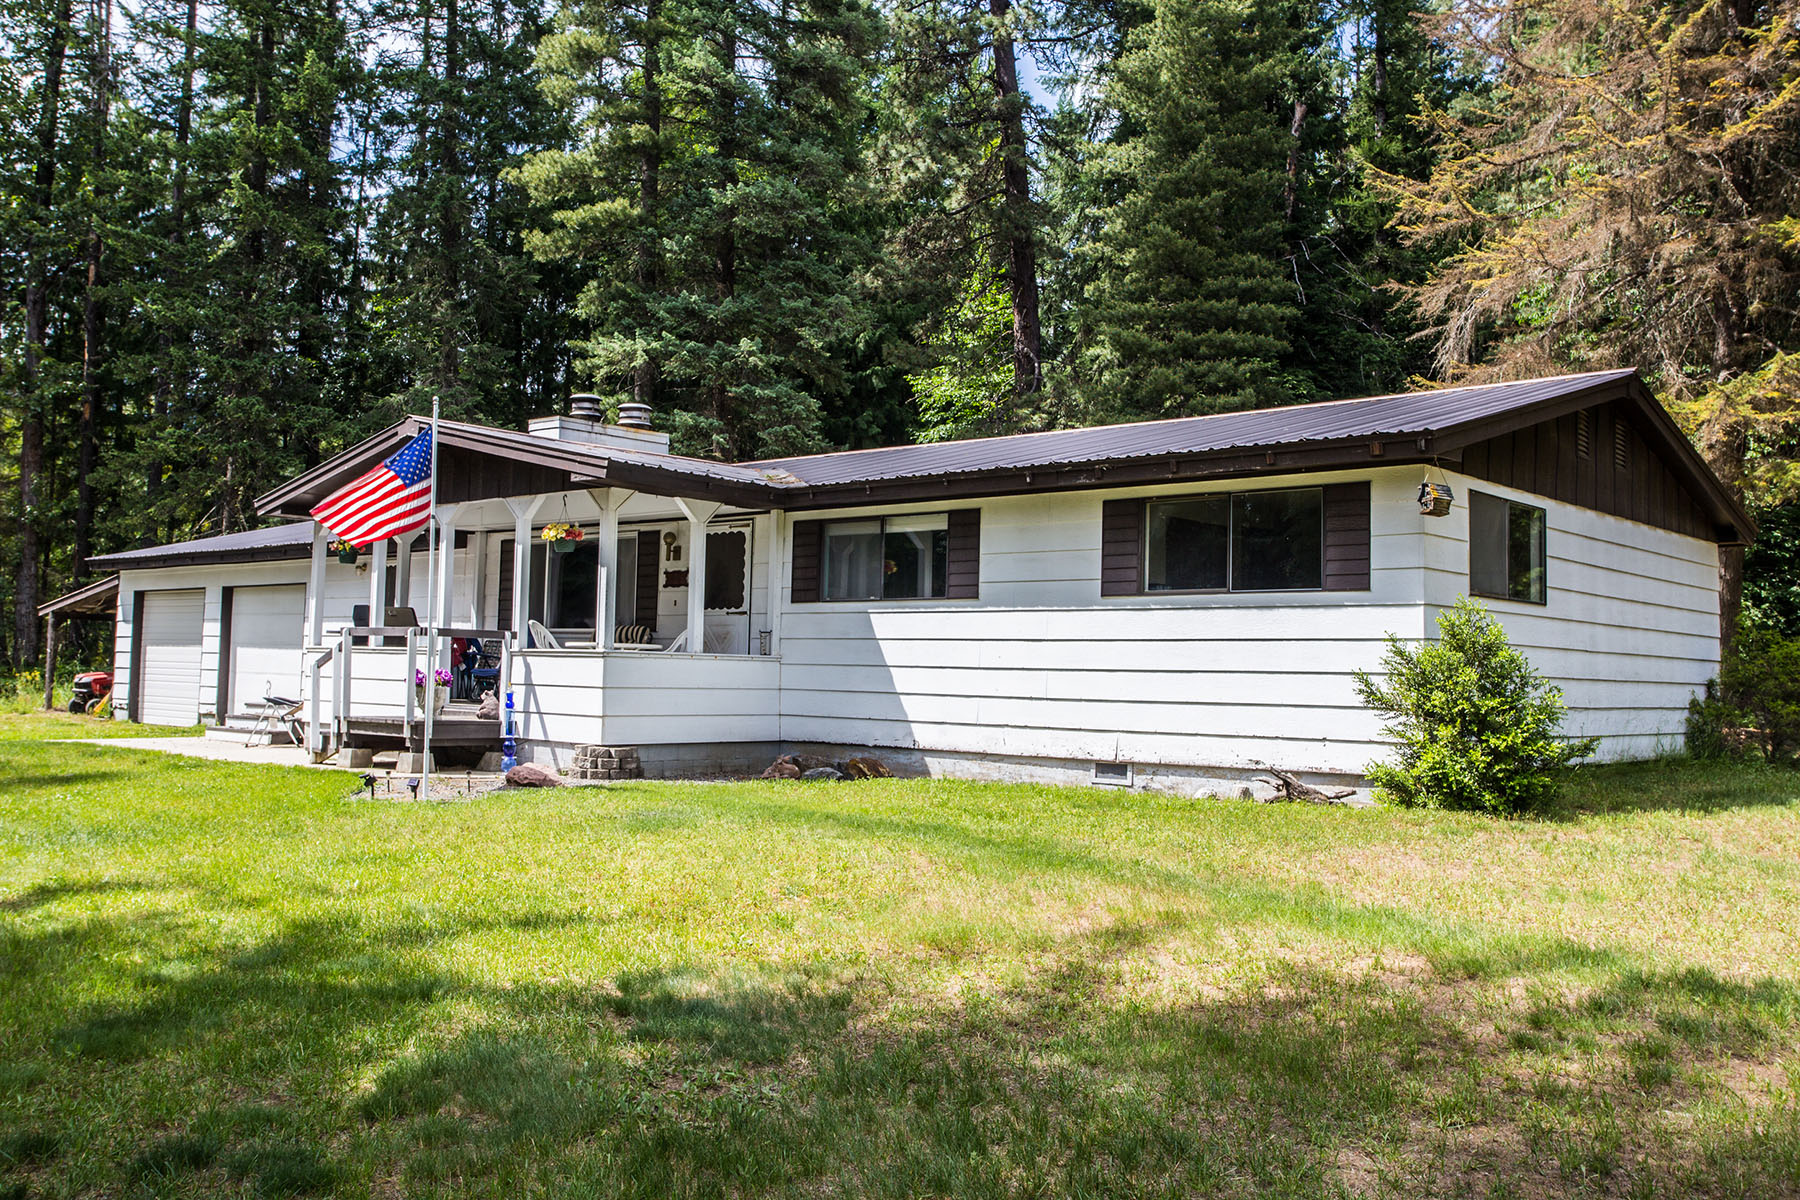 Single Family Home for Sale at Come and experience the privacy of a country home 102 Forty Acres Rd Sandpoint, Idaho, 83864 United States